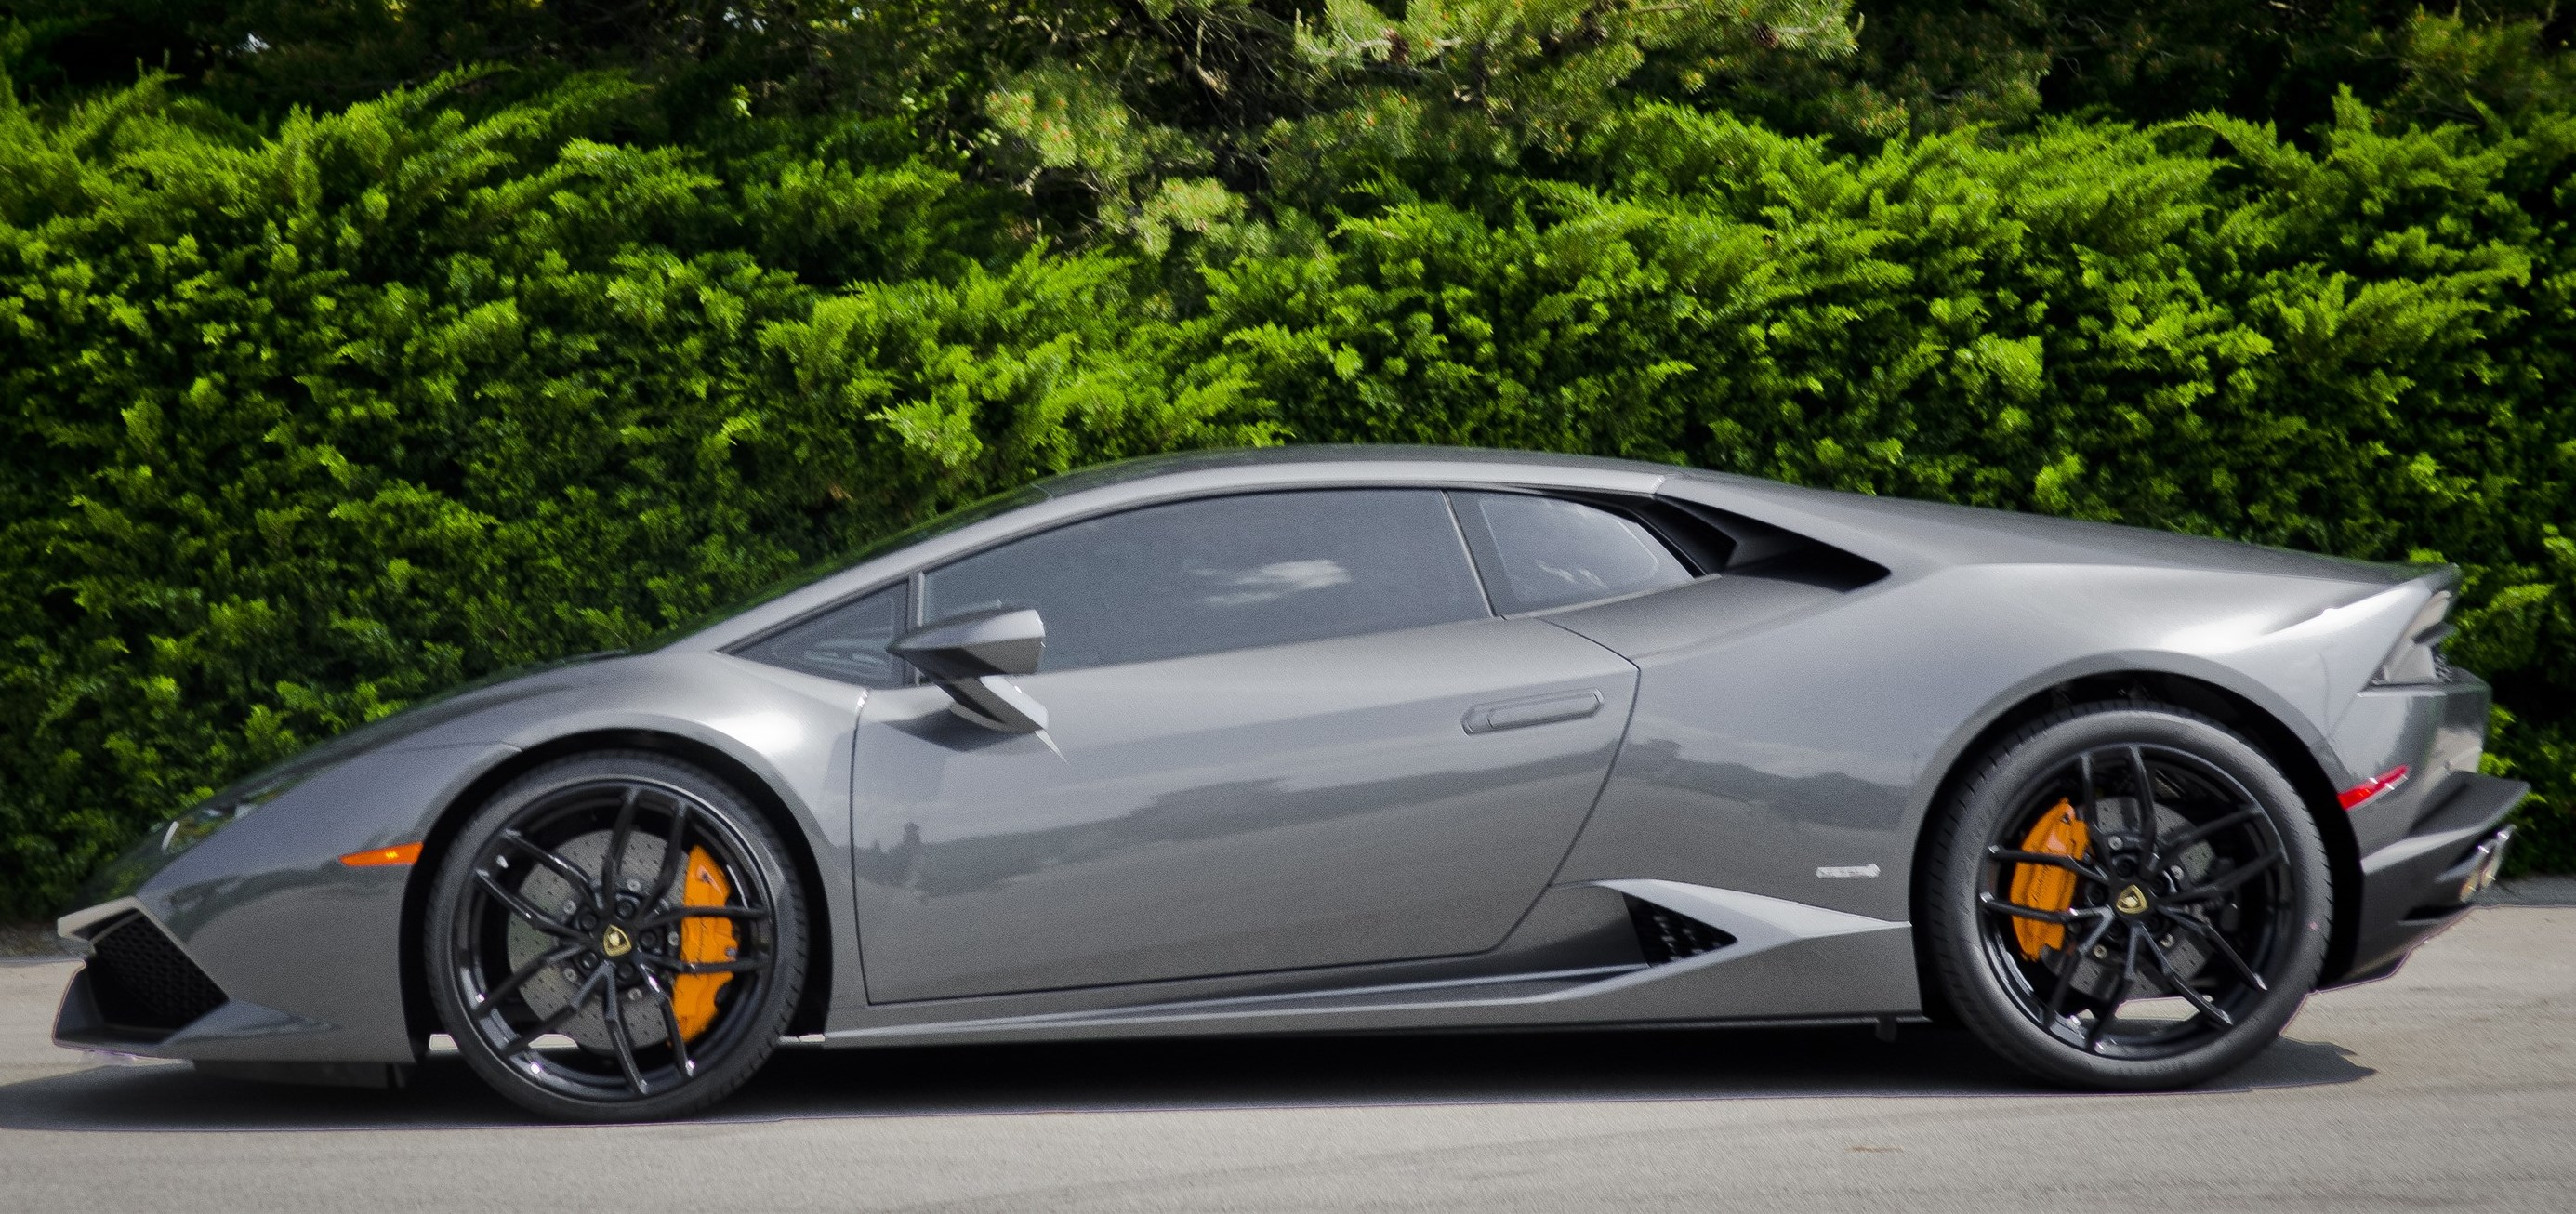 187 Huracan Exotic Car Search